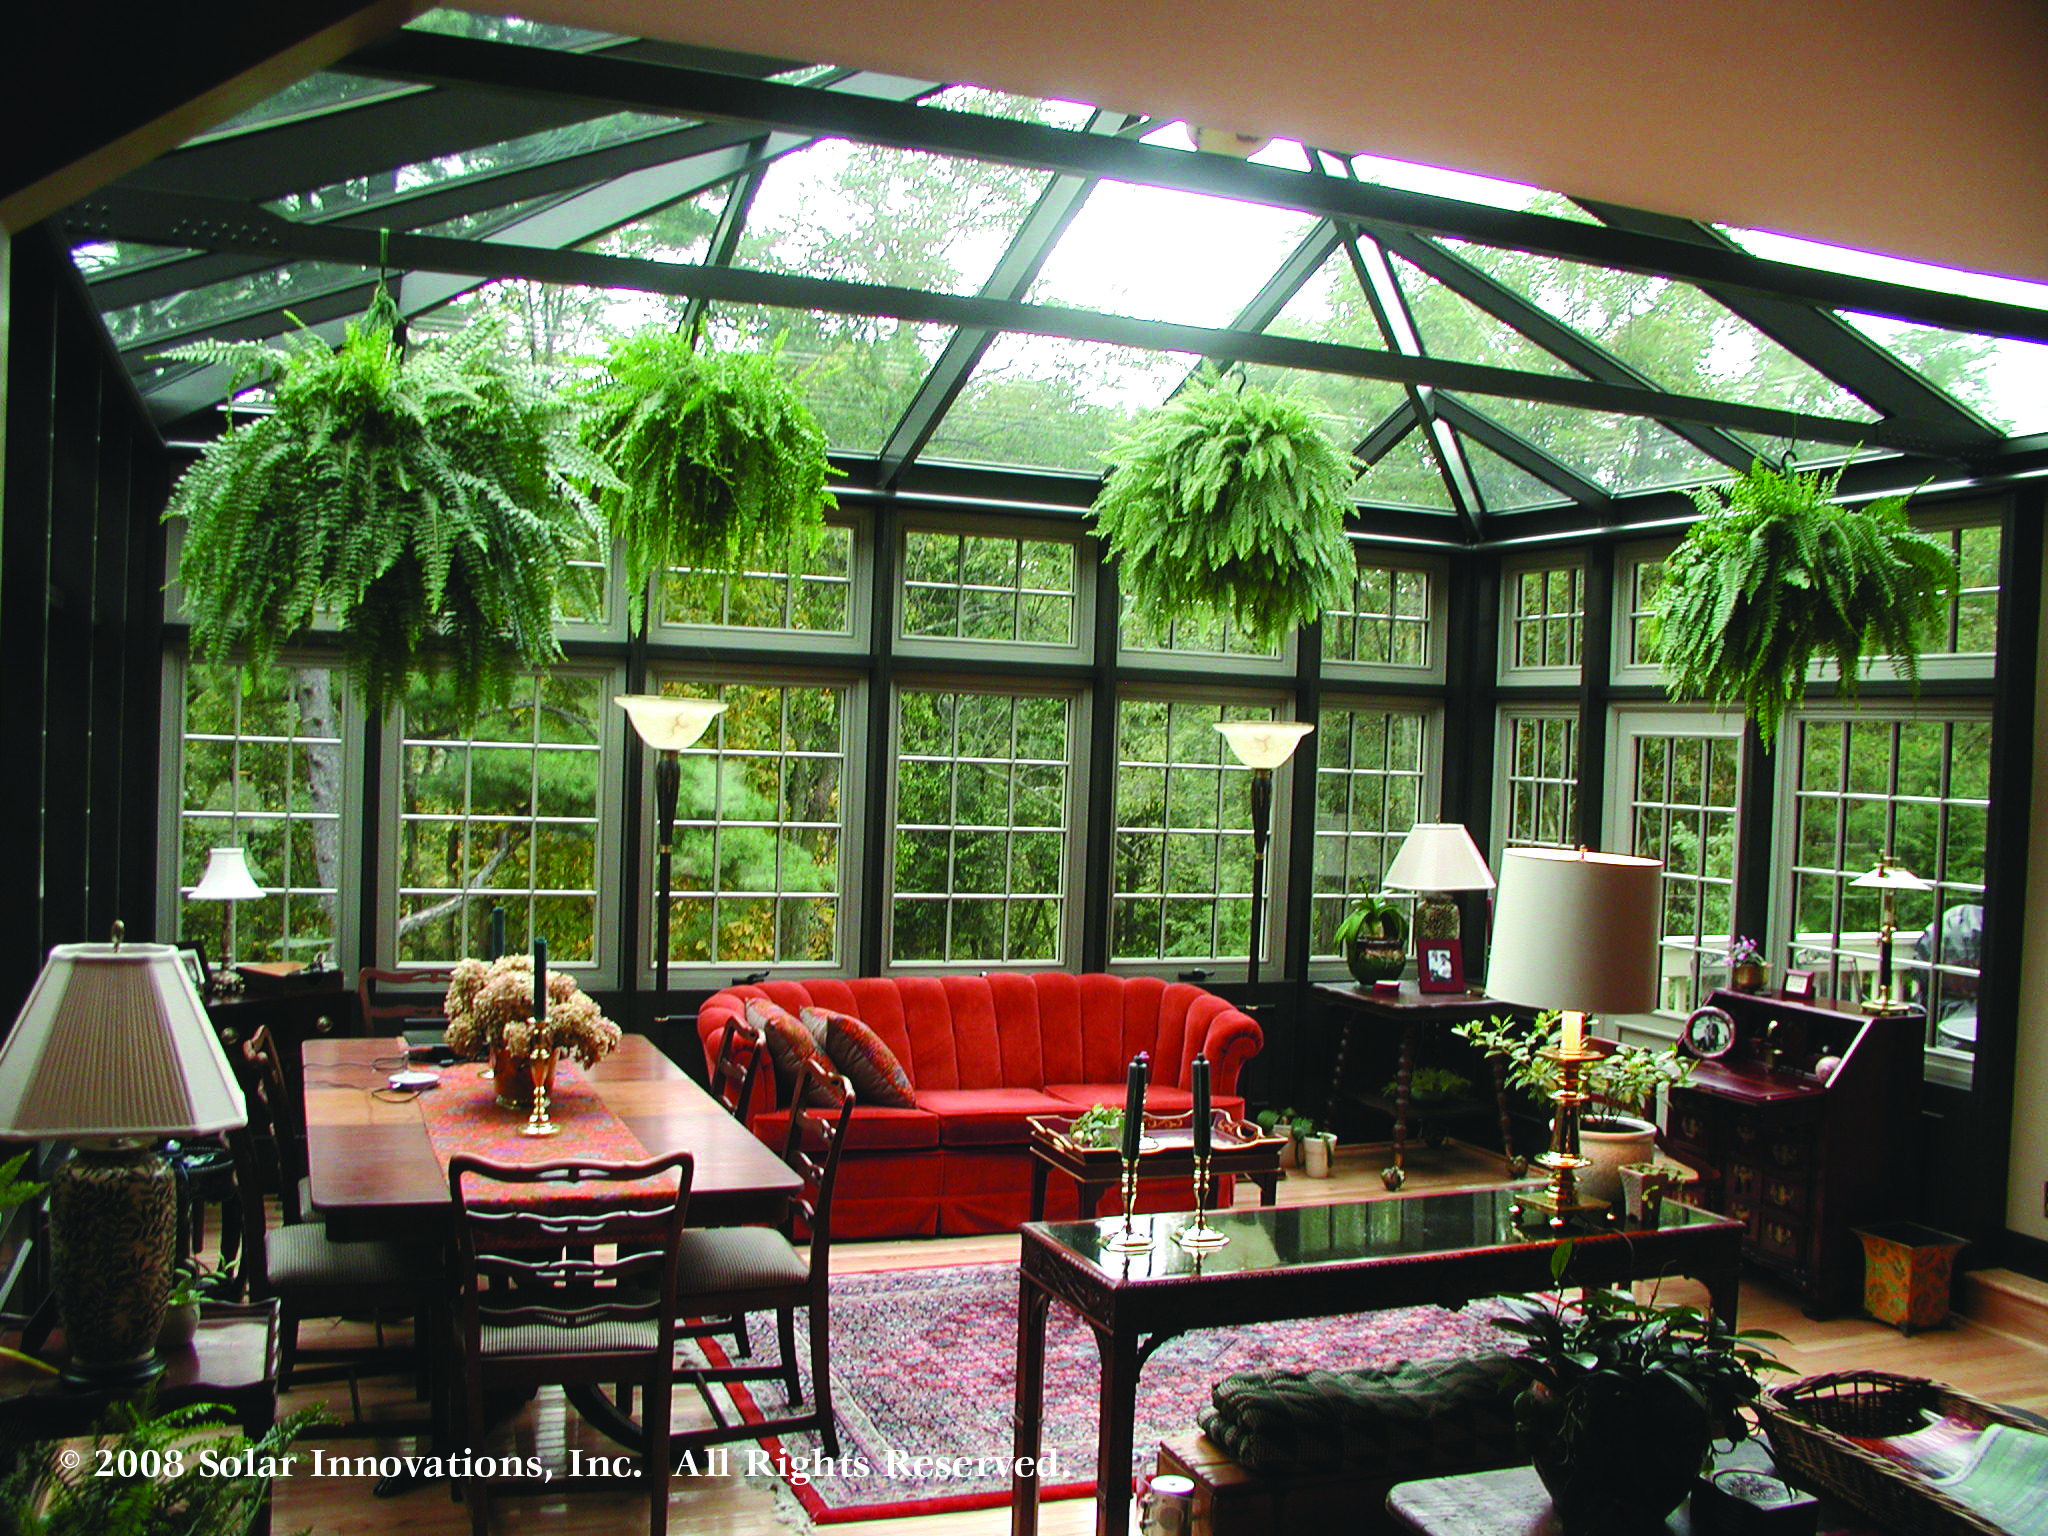 Conservatories - Traditional & Modern